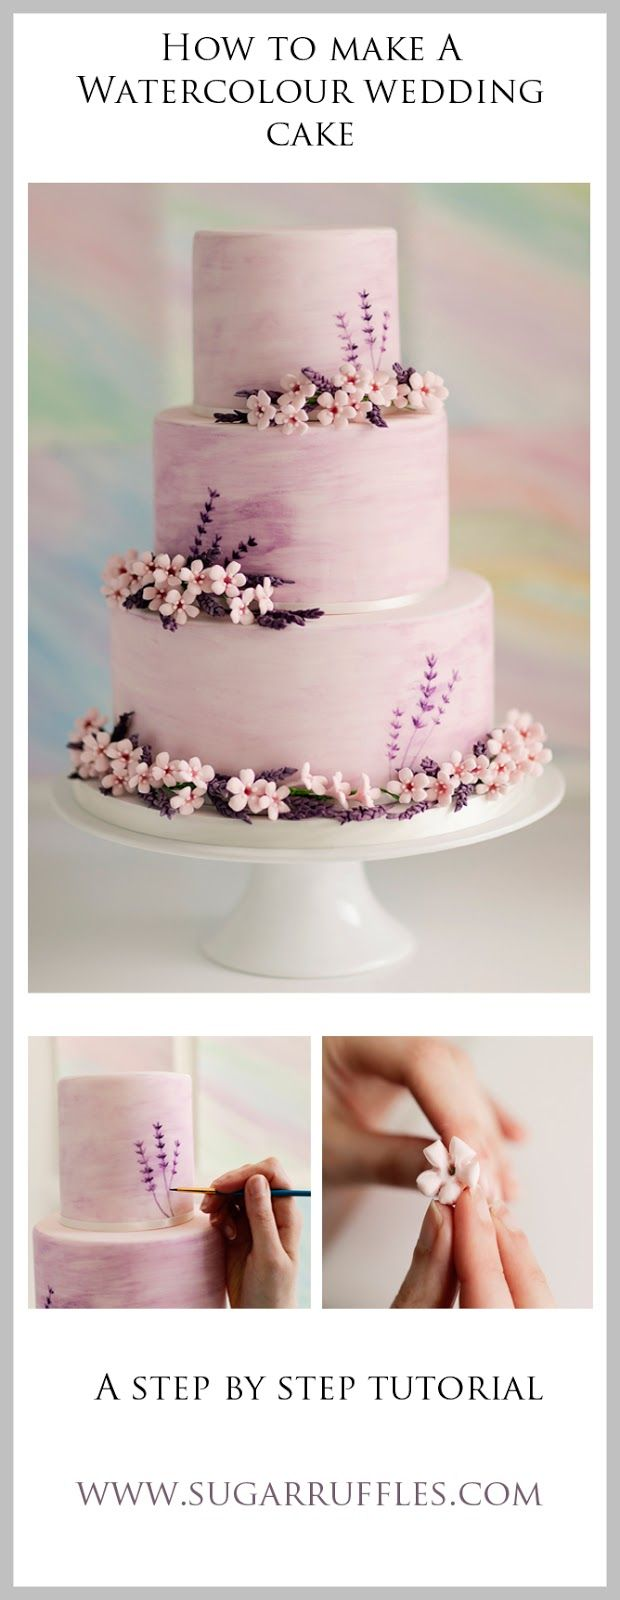 Today I will be showing you a closer look at the details in my watercolour wedding cake design. The tutorial for this design is available ...